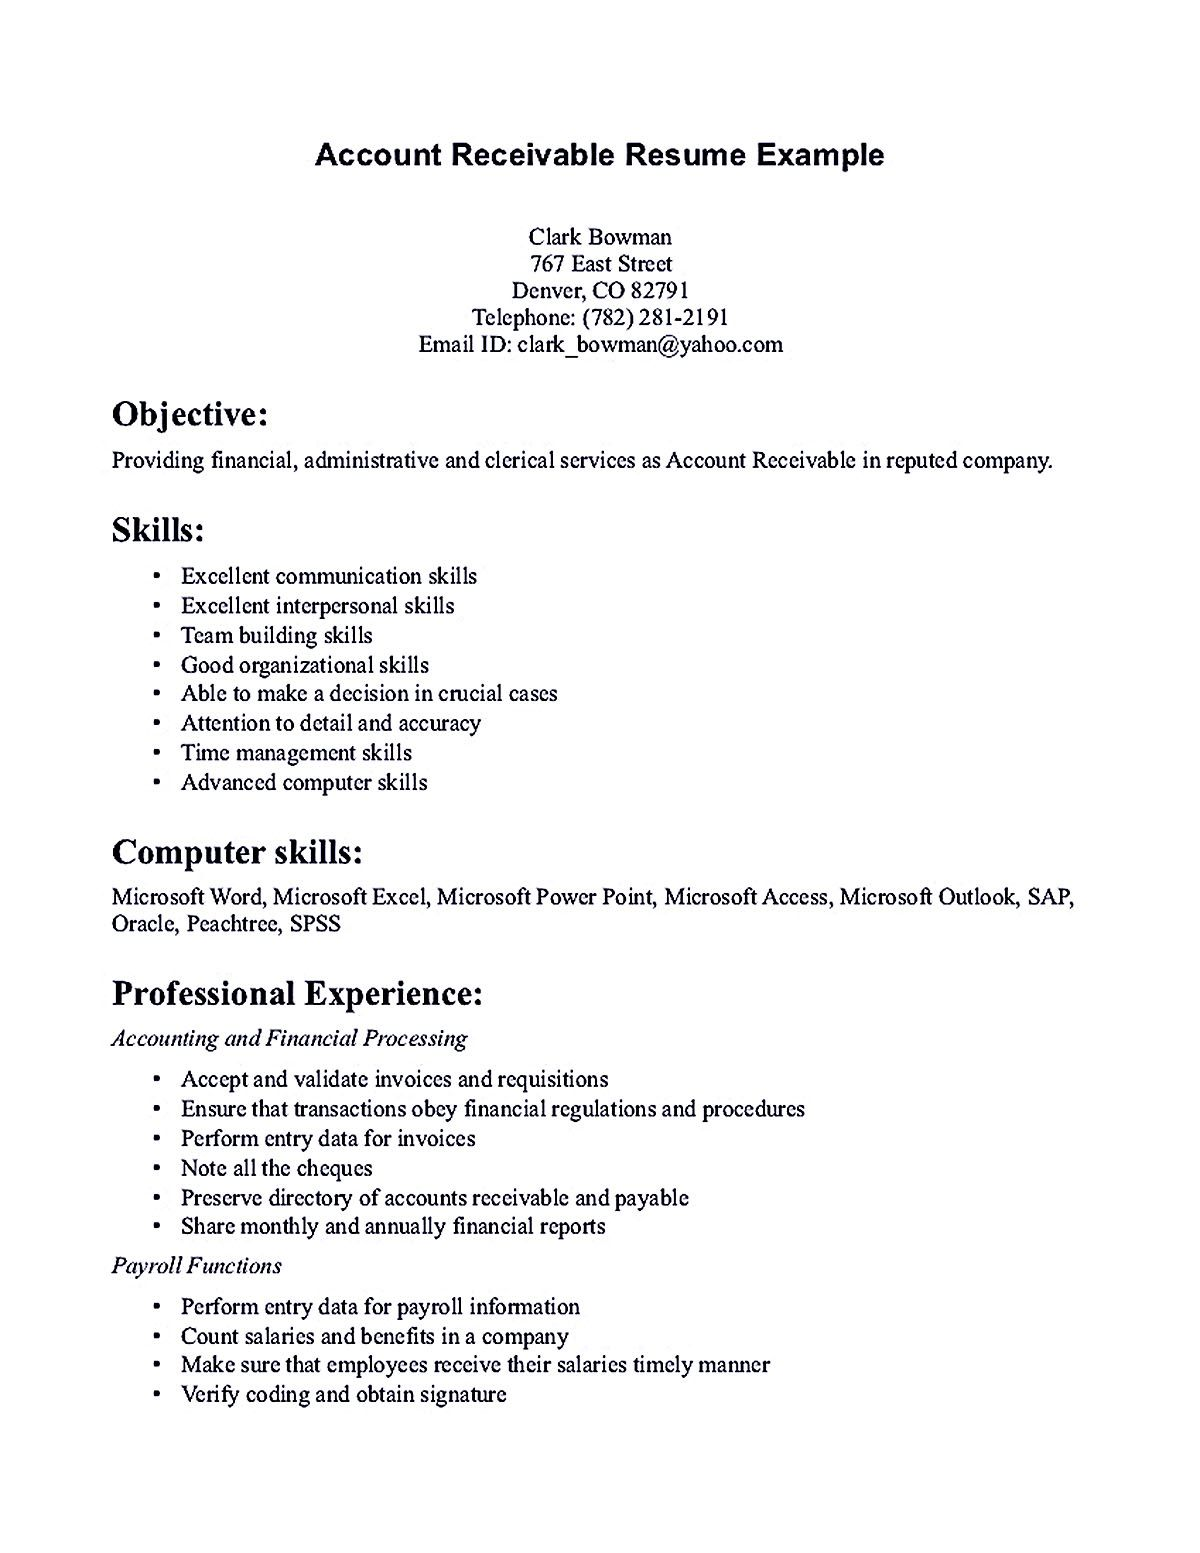 Accounts Payable And Receivable Resume Endearing Account Receivable Resume Shows Both Technical And Interpersonal .